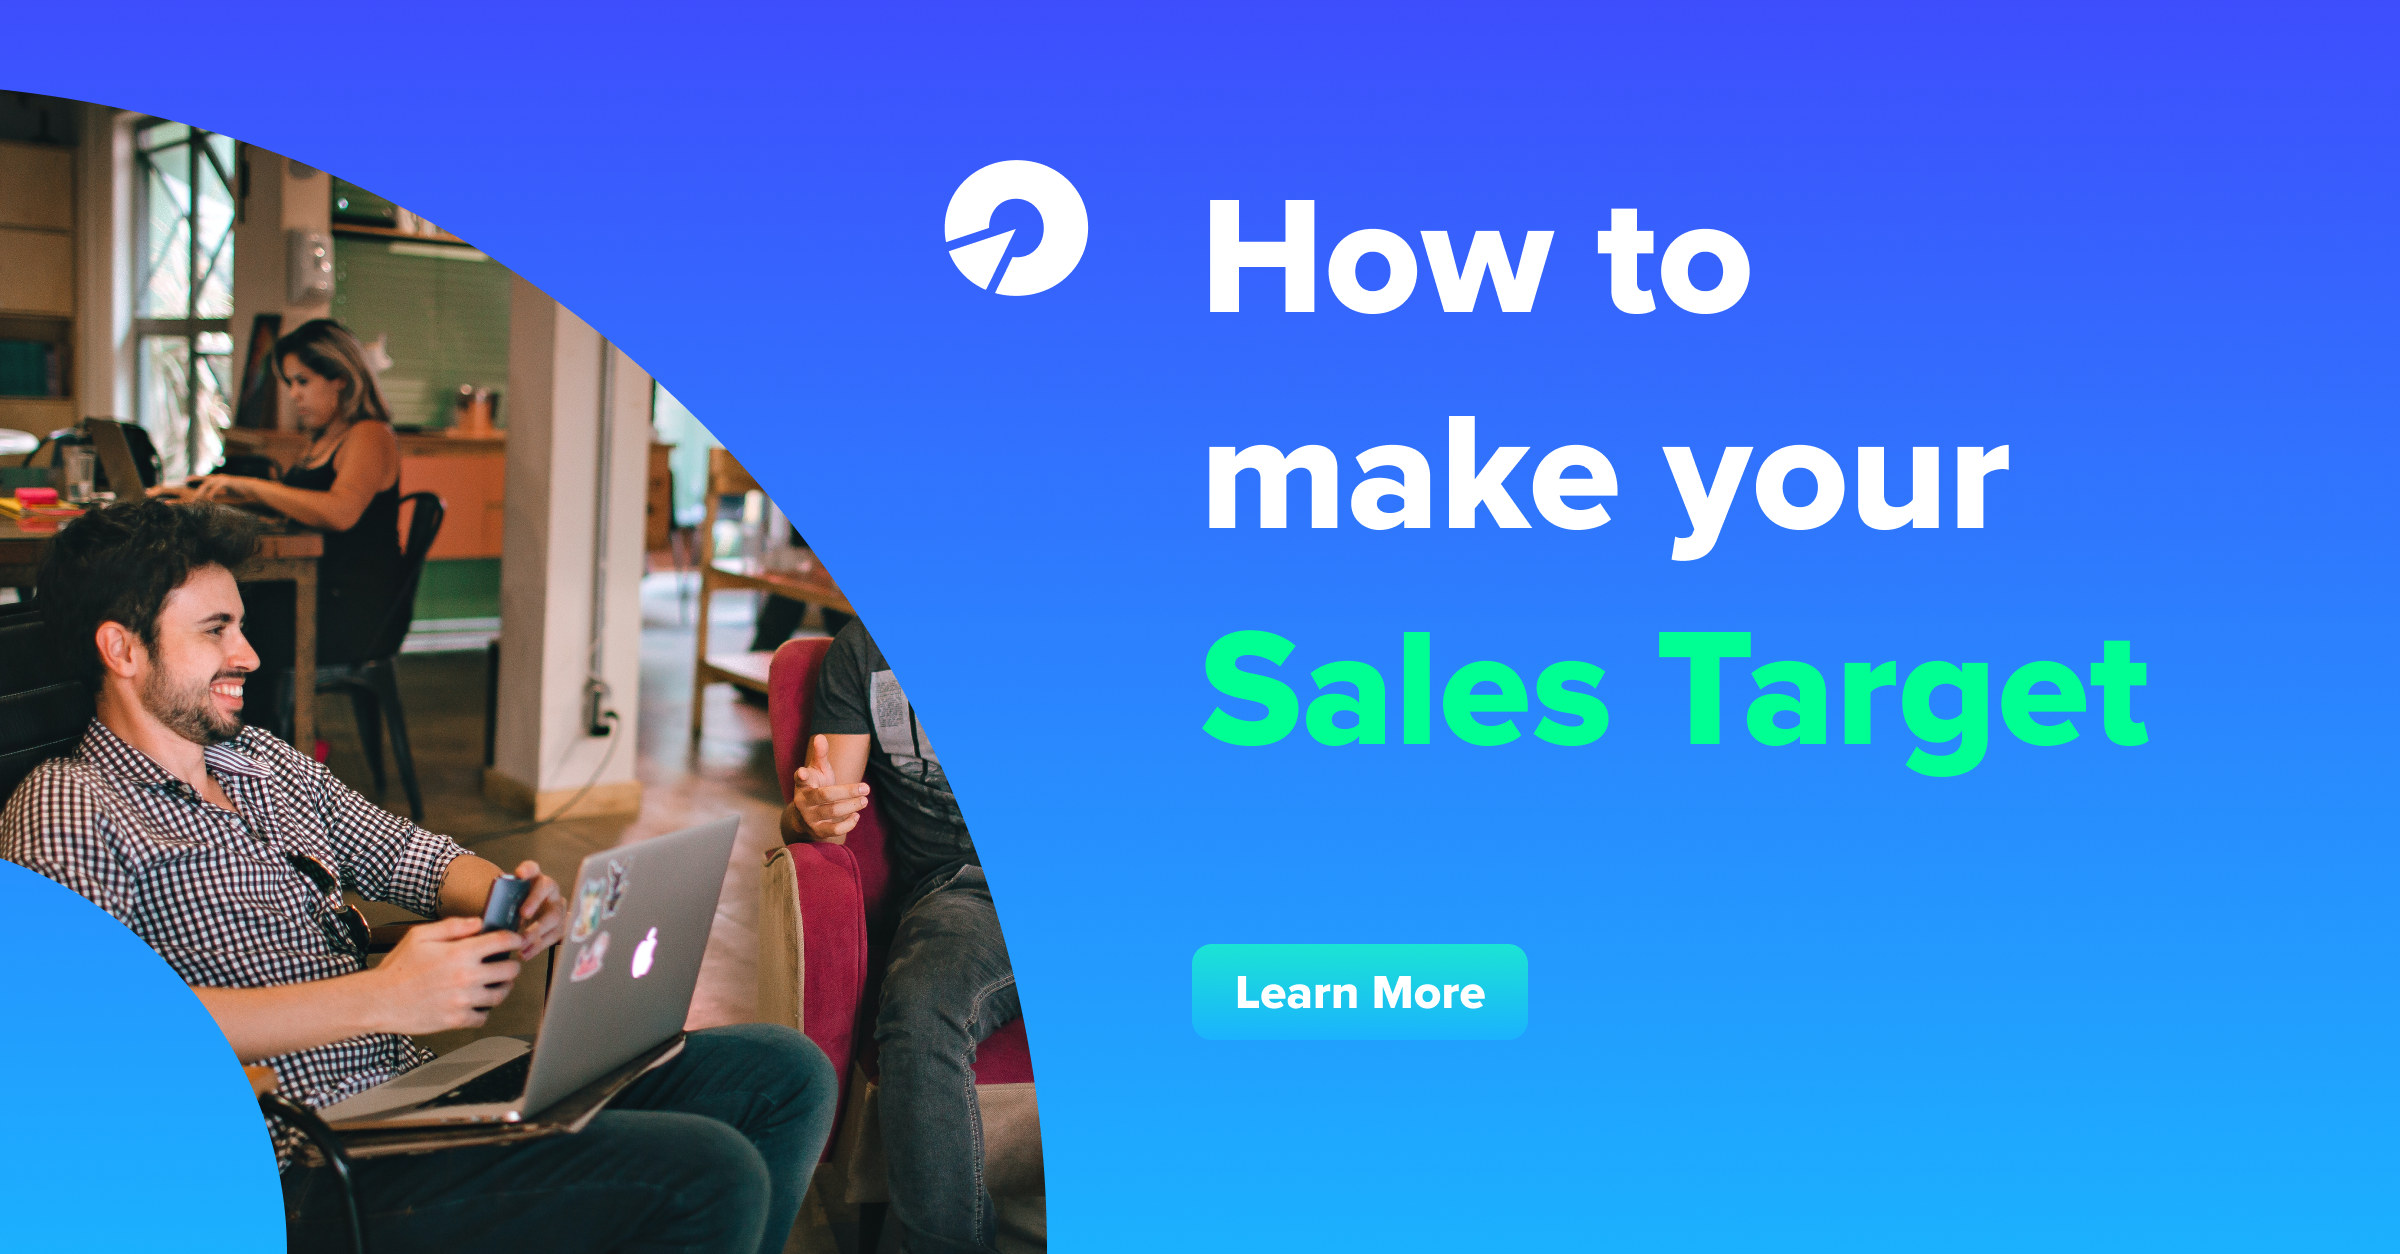 How to make your Sales Target